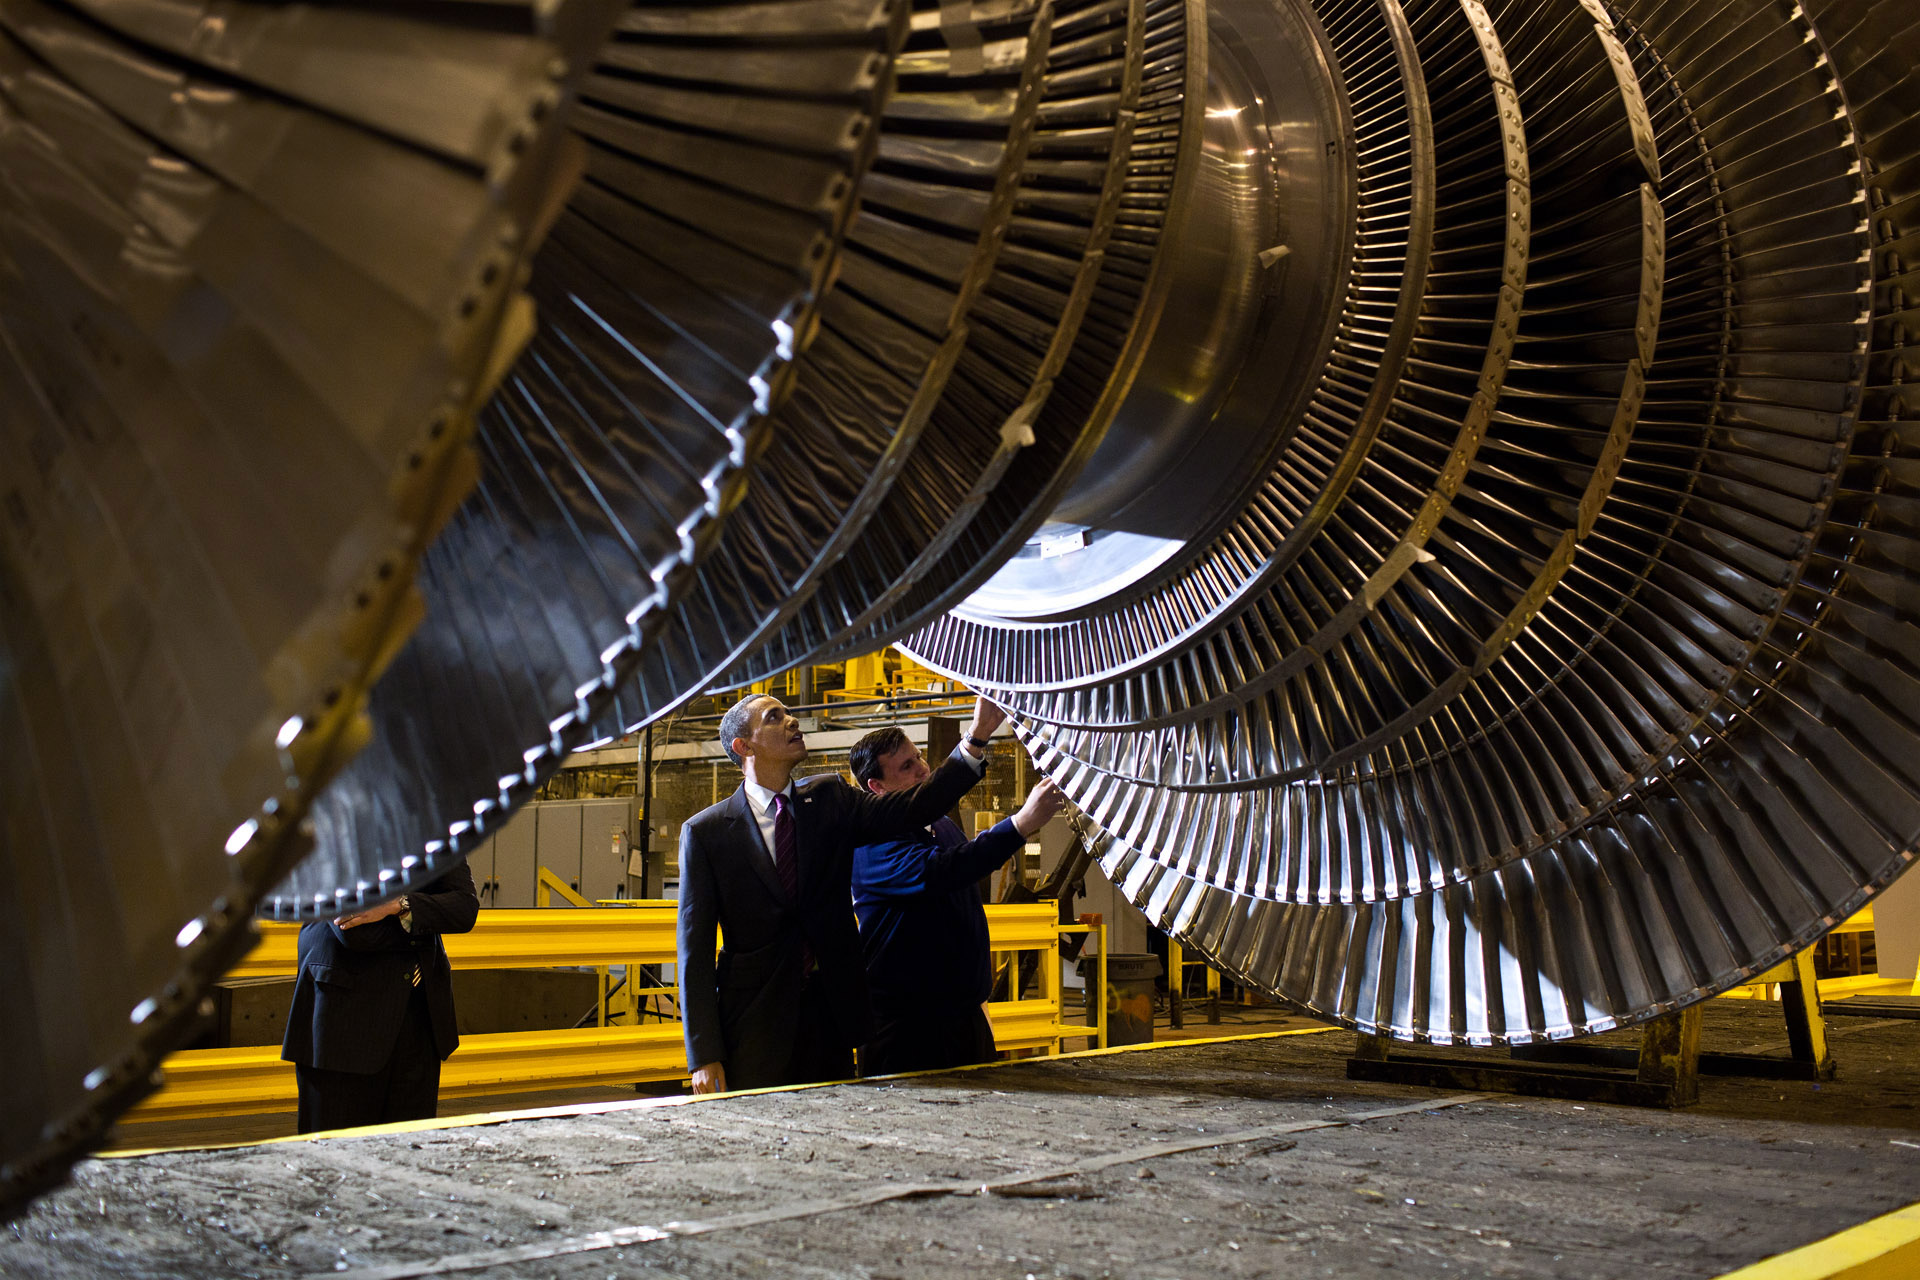 President Barack Obama looks at a turbine rotor while touring the General Electric plant